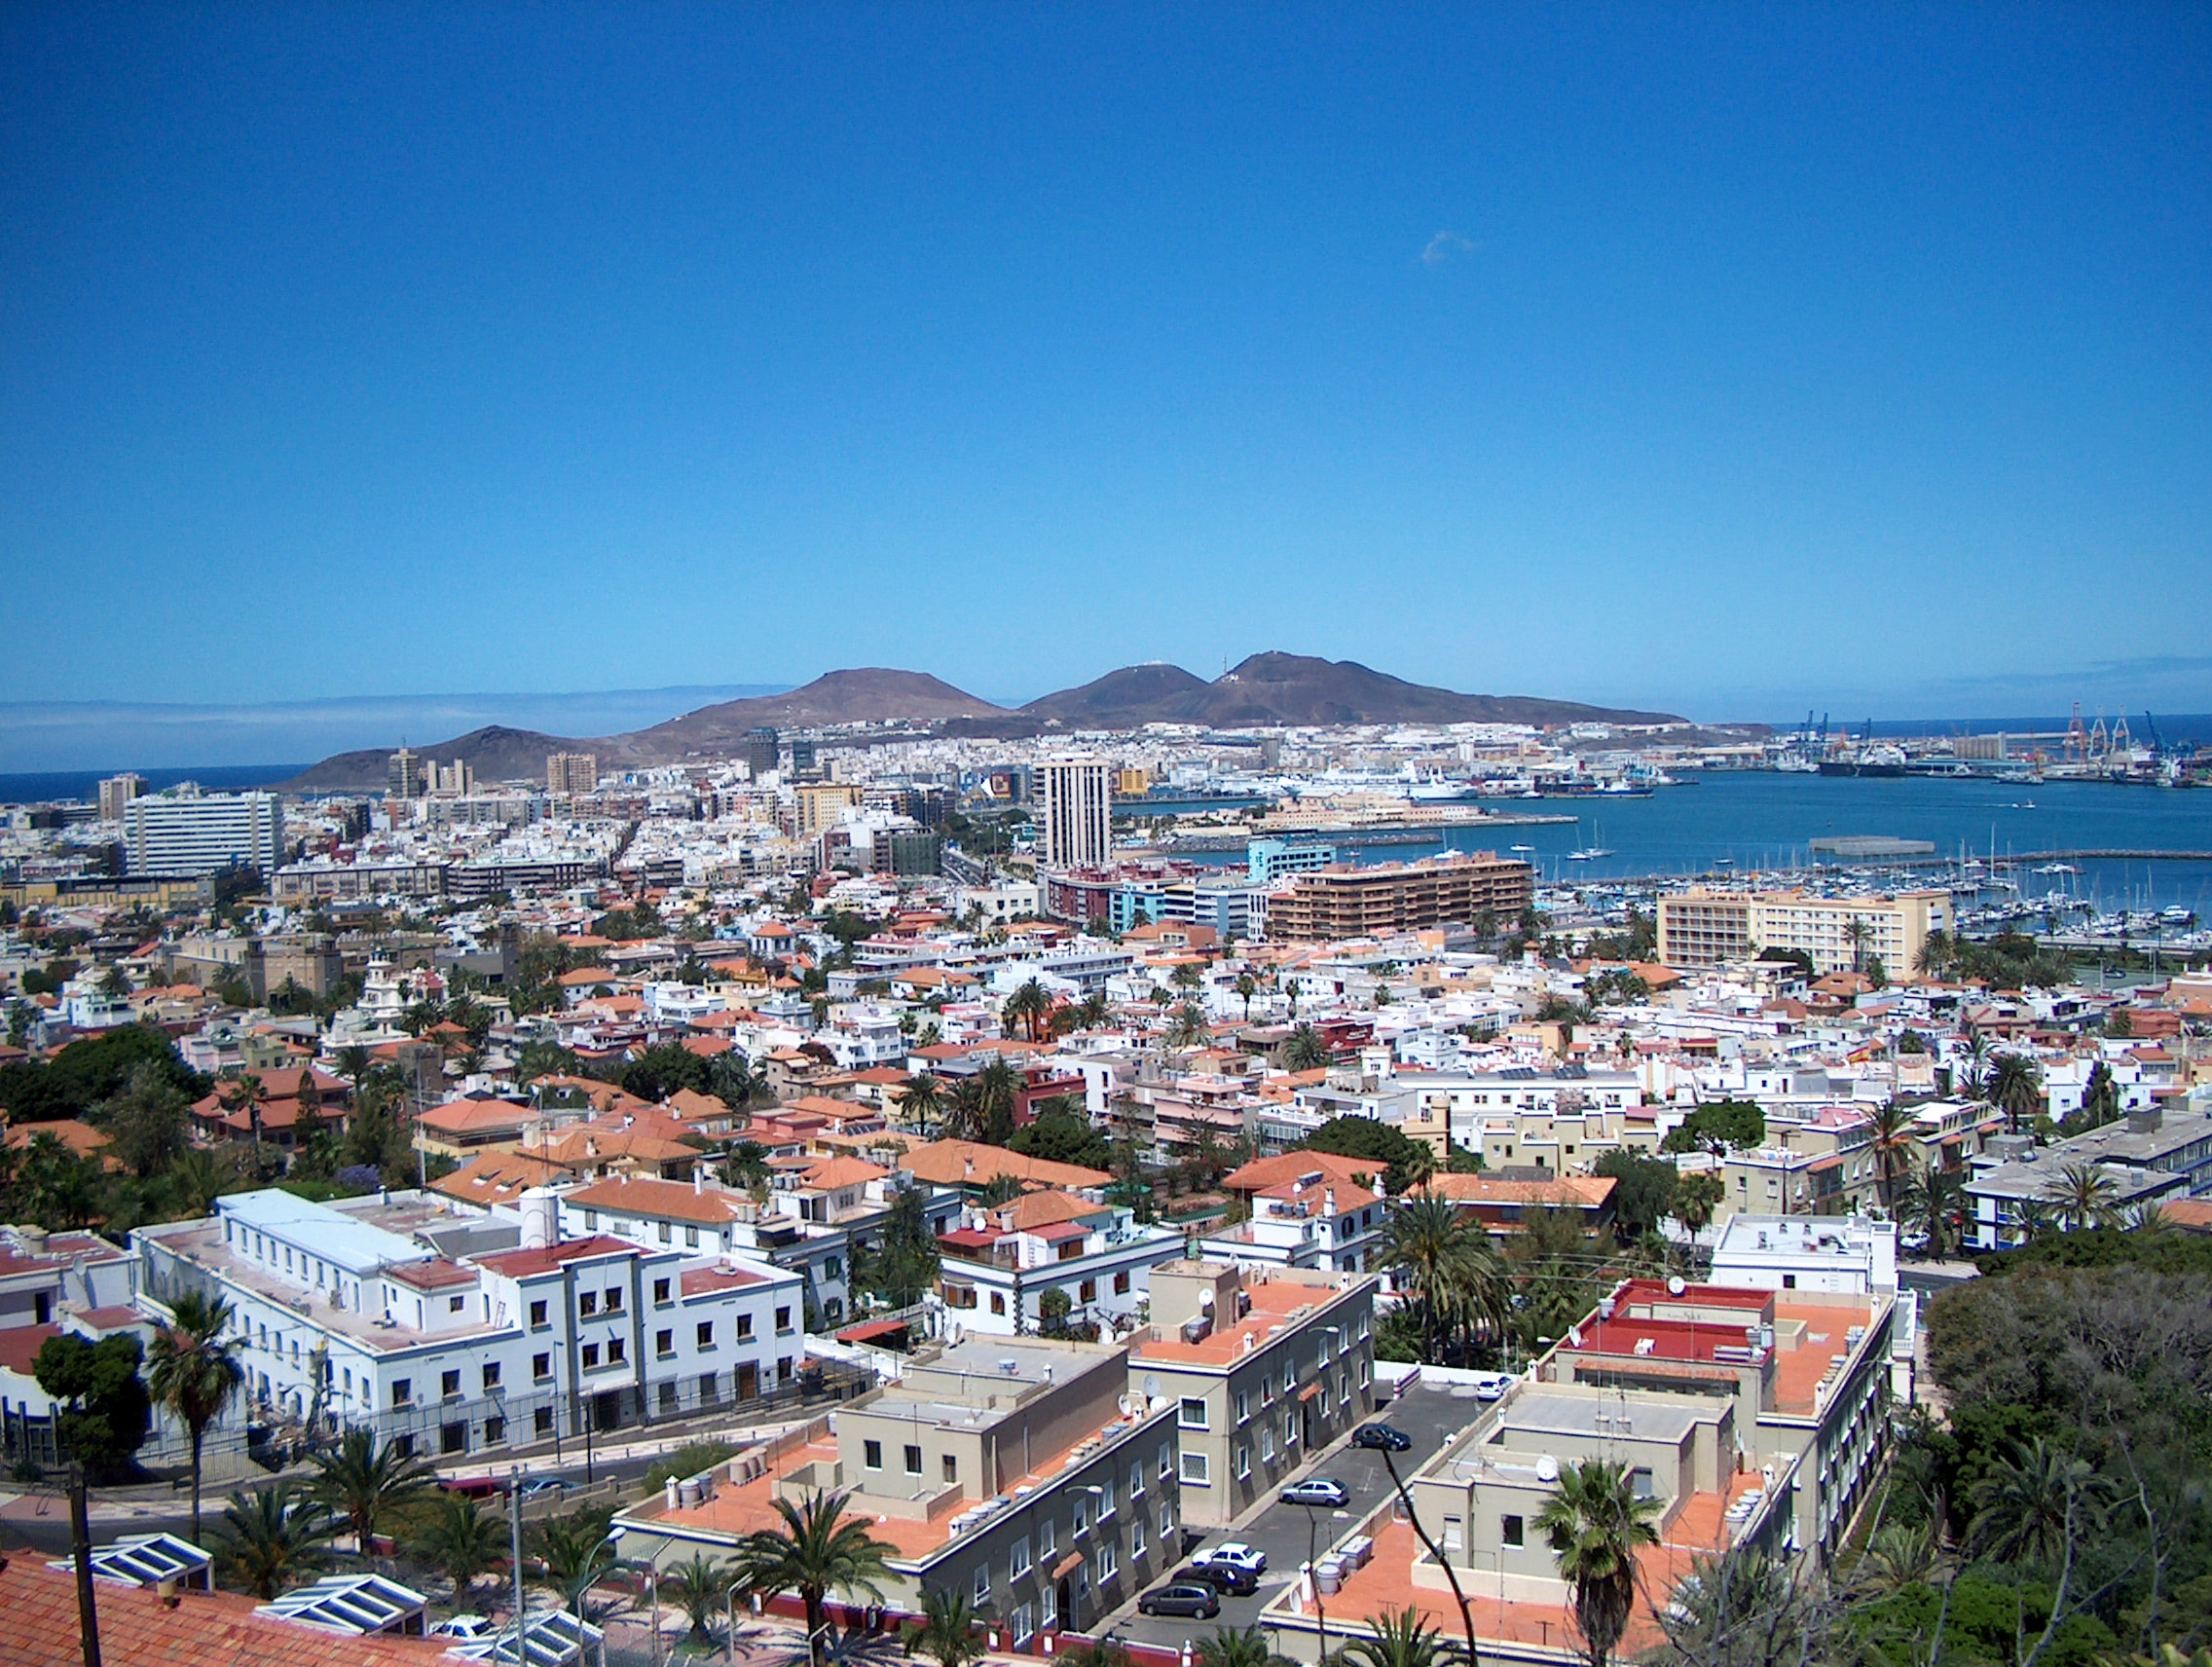 Las_Palmas_de_Gran_Canaria-Panoramic_view_over_the_city-2